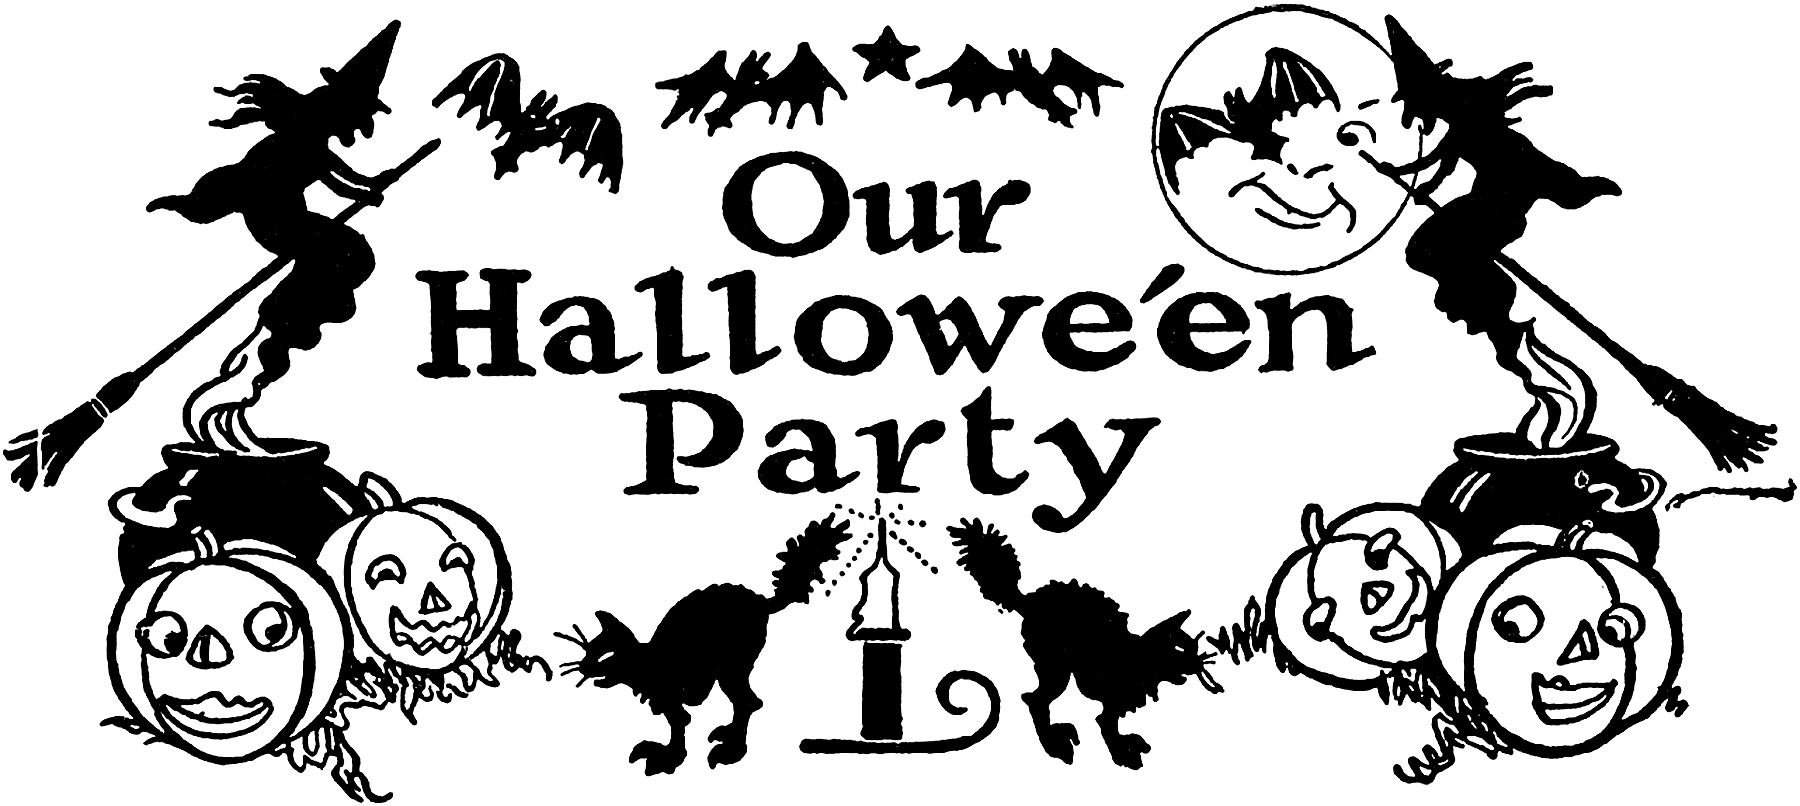 Nostalgic Black and White Halloween Party Clip Art!.